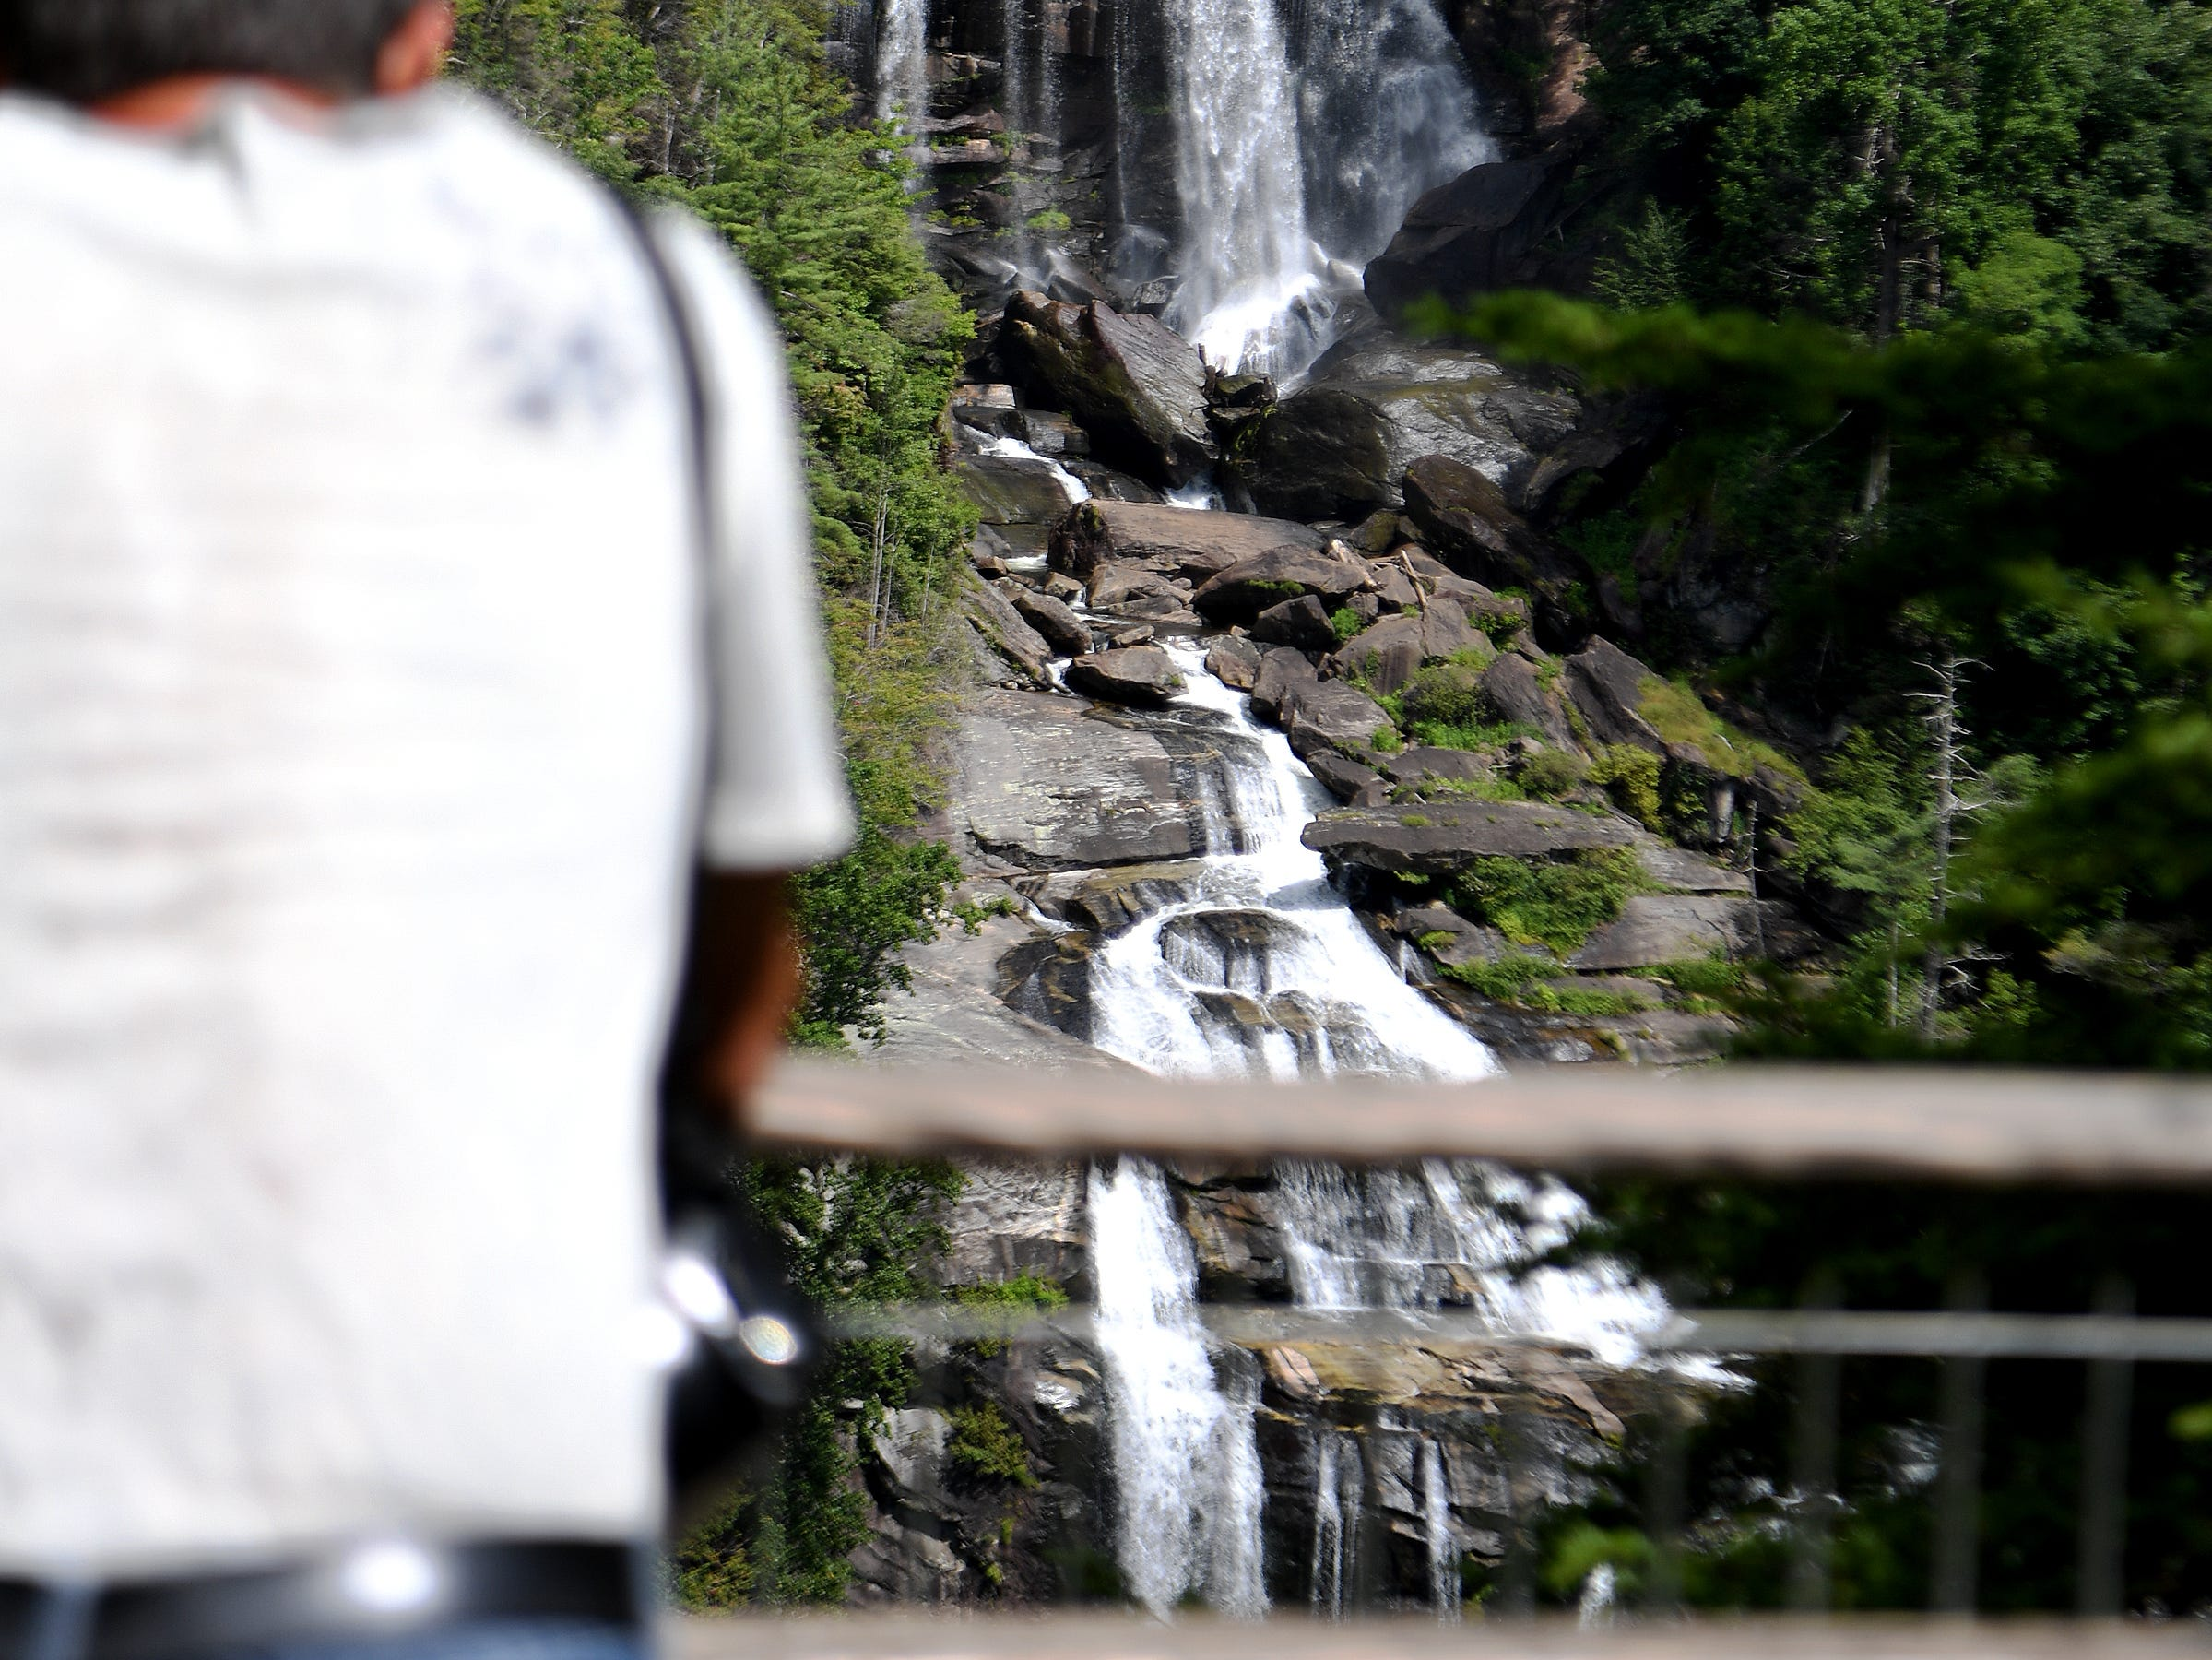 Mike DiLeo, of Murrells Inlet, South Carolina, takes in Whitewater Falls in the Nantahala National Forest from the observation deck on Wednesday, July 25, 2018. The waterfall is the highest in the East at more than 400 feet. It is also one of the most deadly. A least 13 people have died at the falls since 1995.